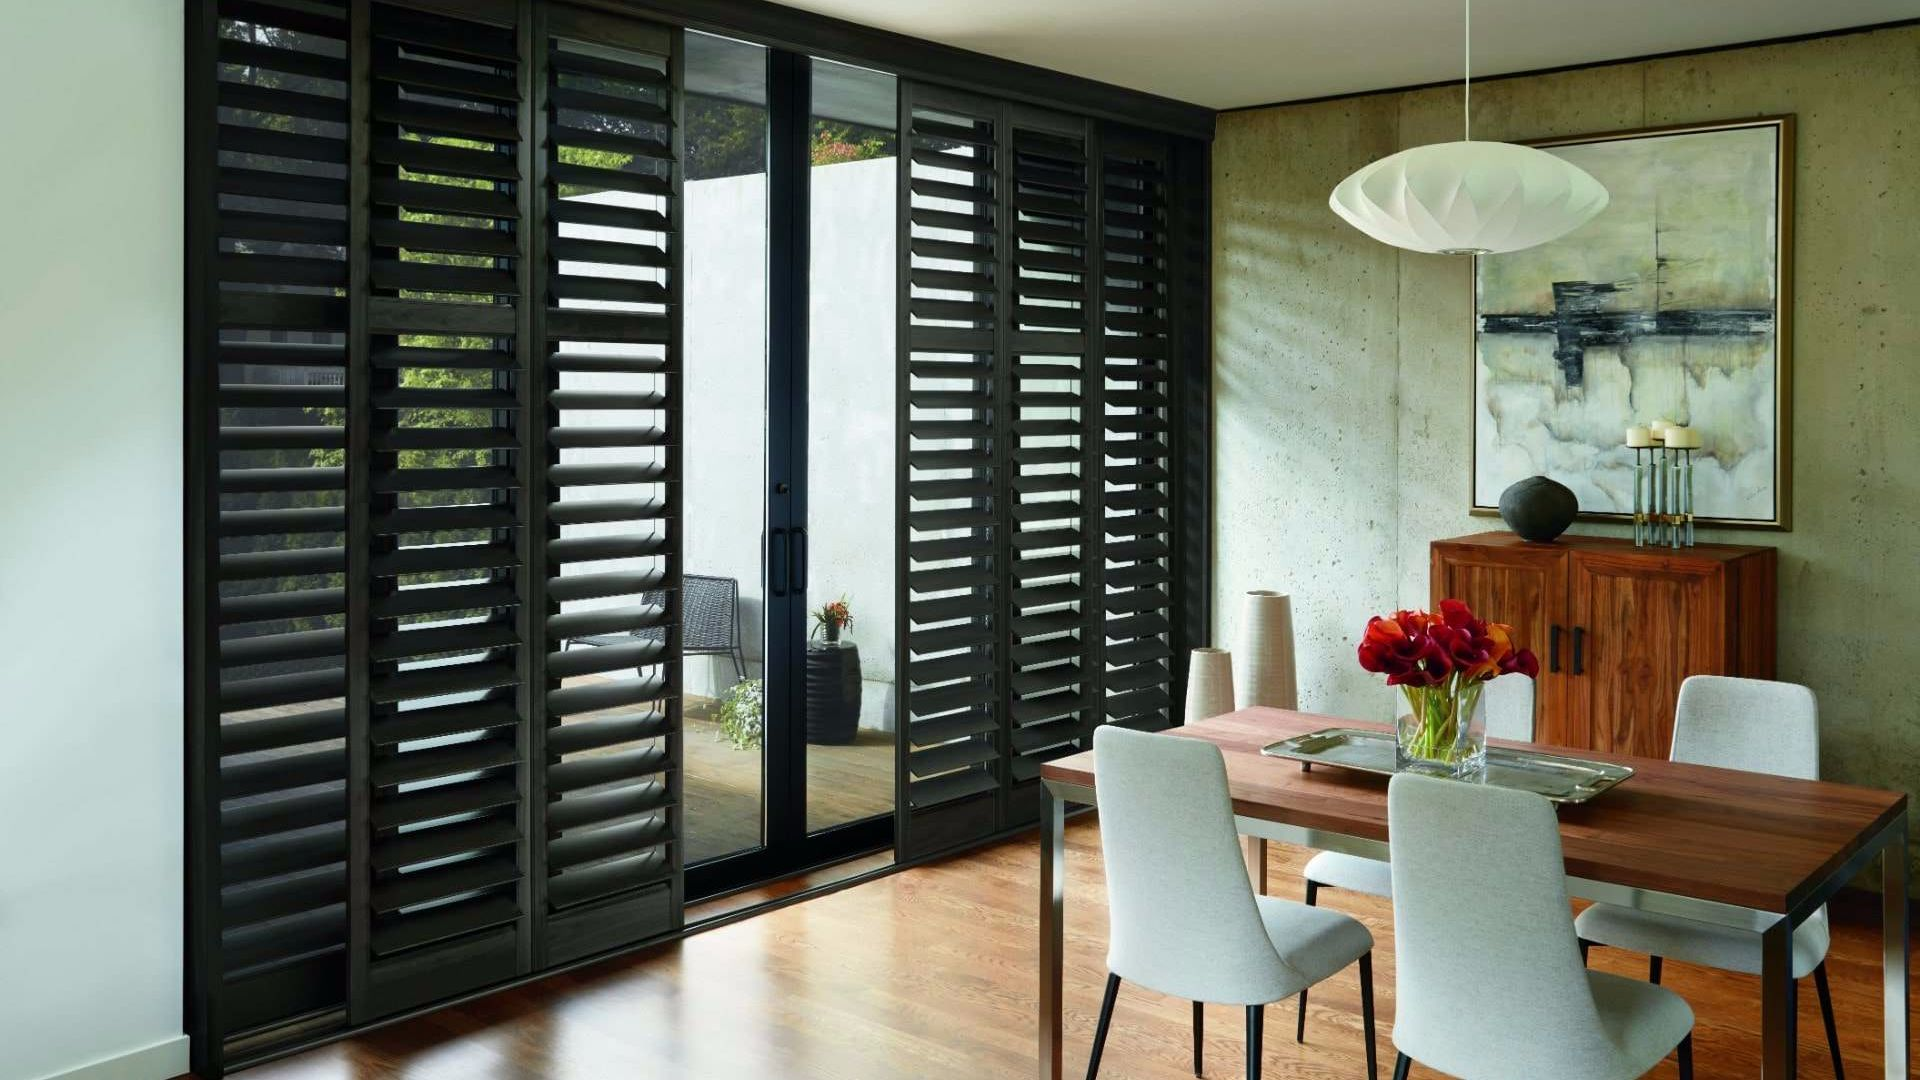 Budget Blinds Canada offers custom blinds, shades, shutters and other window coverings. Sign up today for a free in-home consultation.